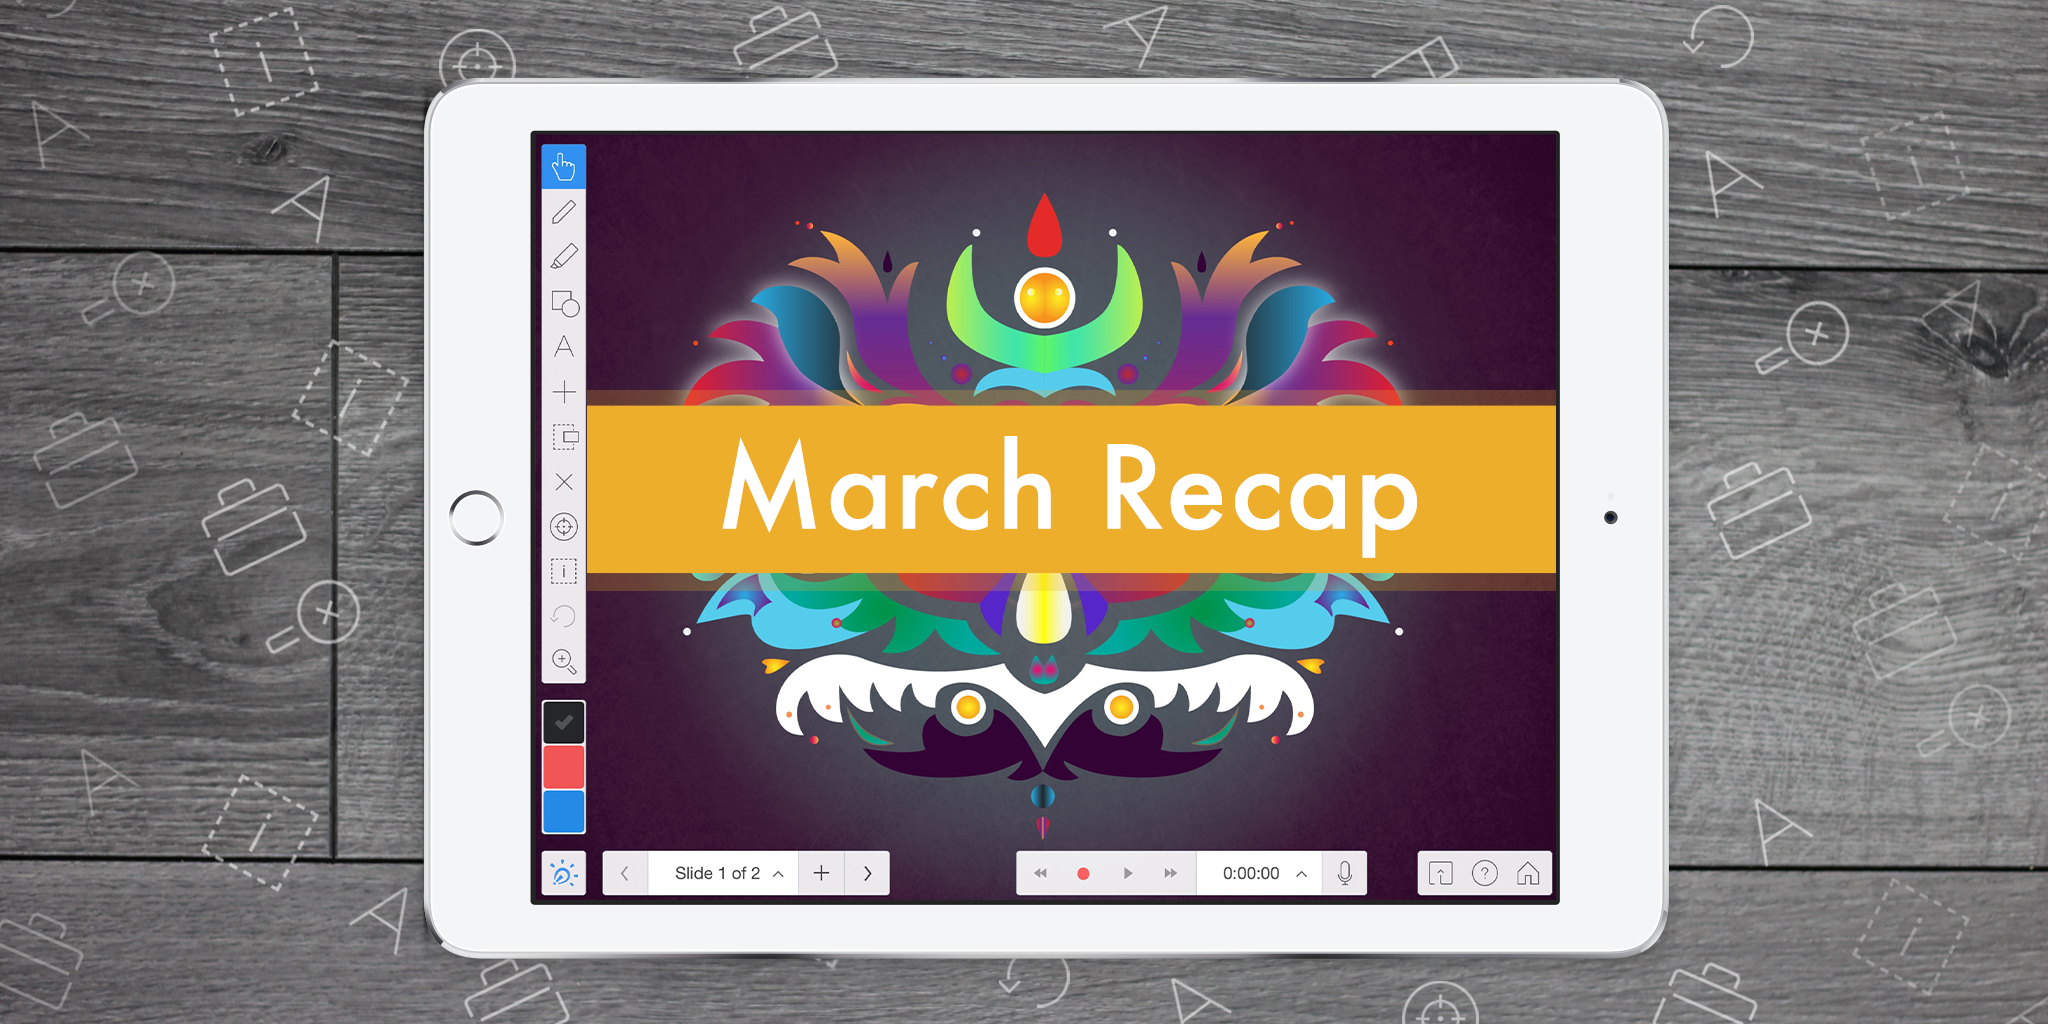 News, Articles, and Tips from March 2016